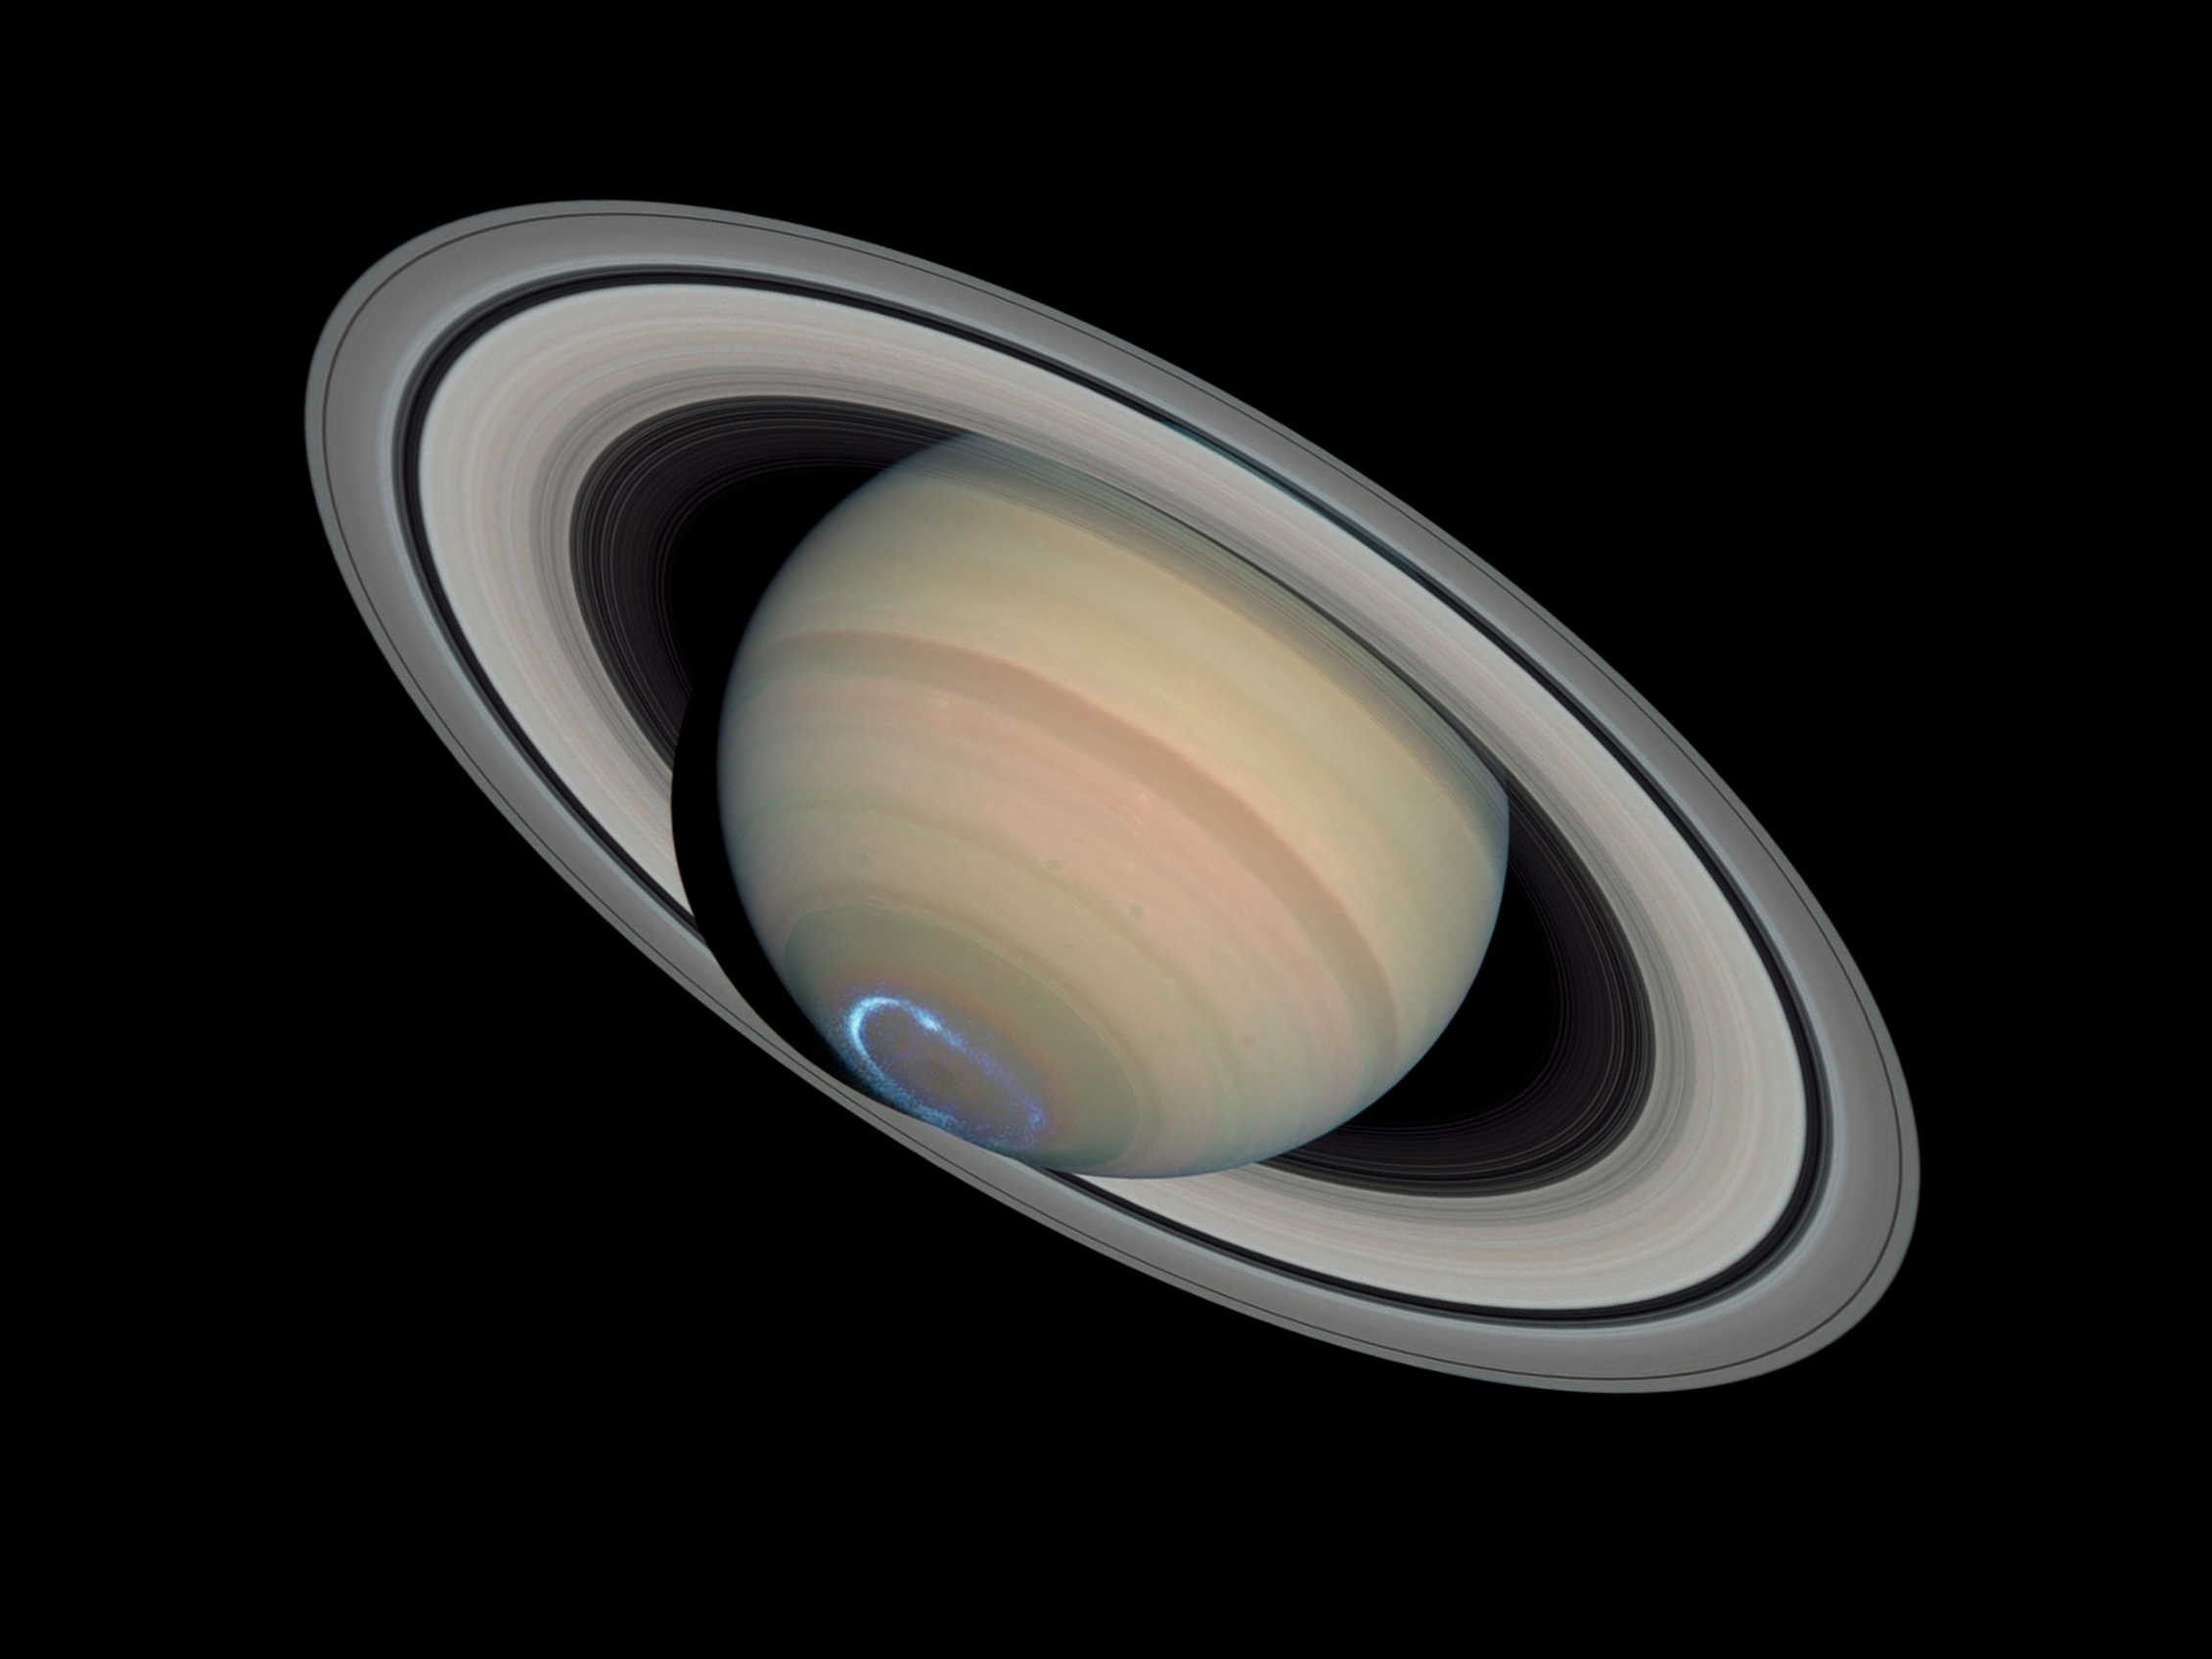 File:Saturn with auroras.jpg - Wikimedia Commons